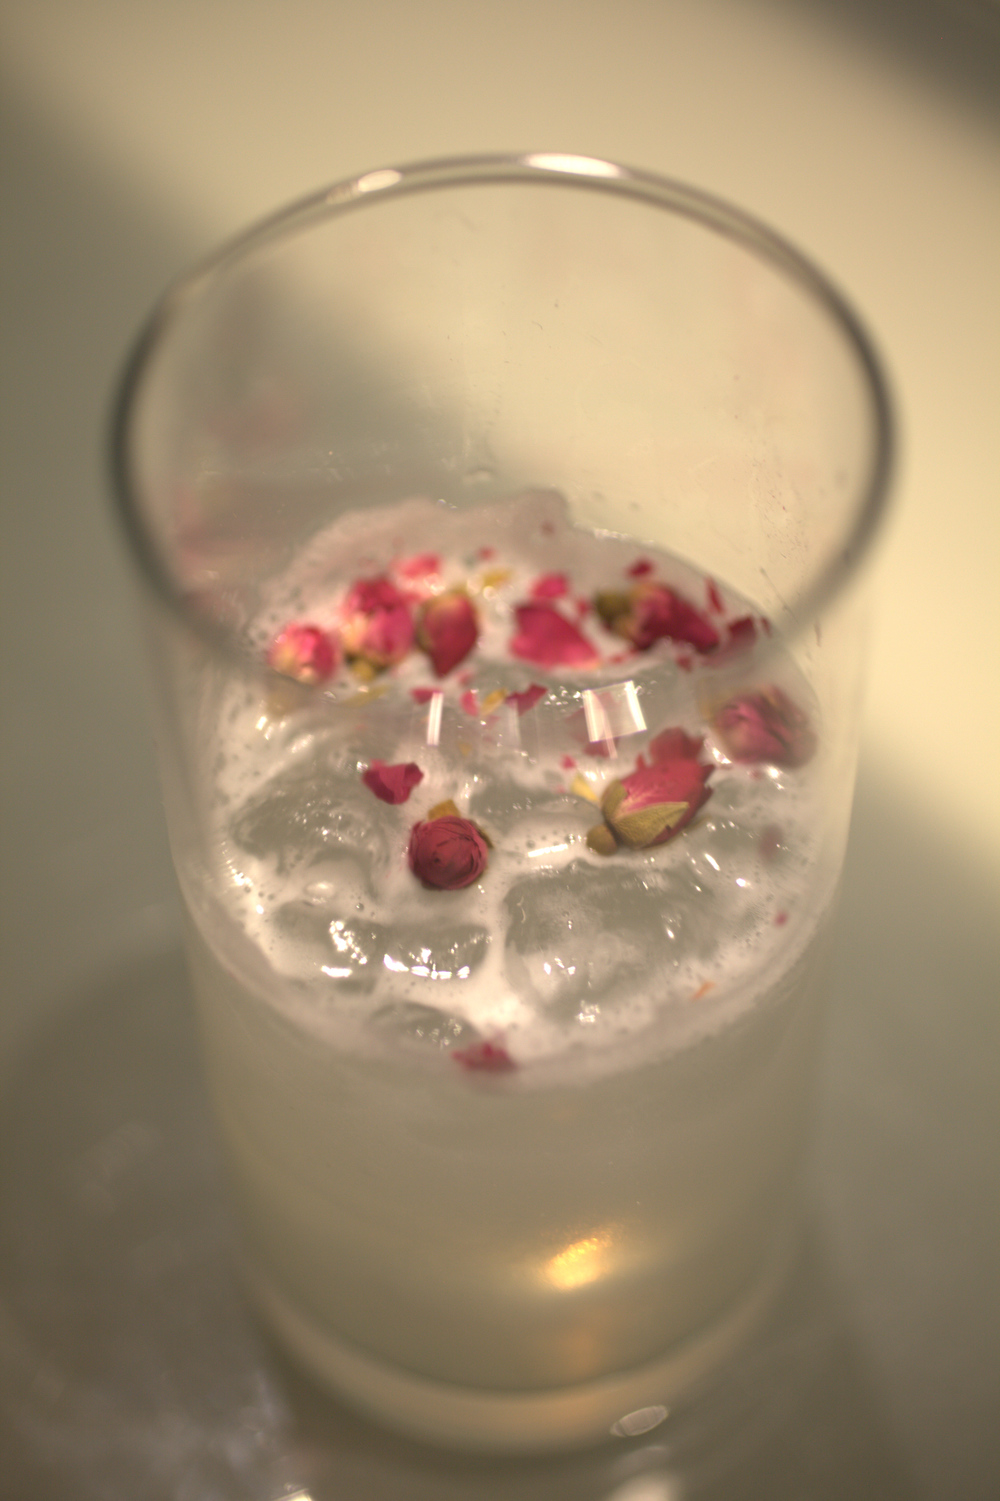 Cocktail with dried roses